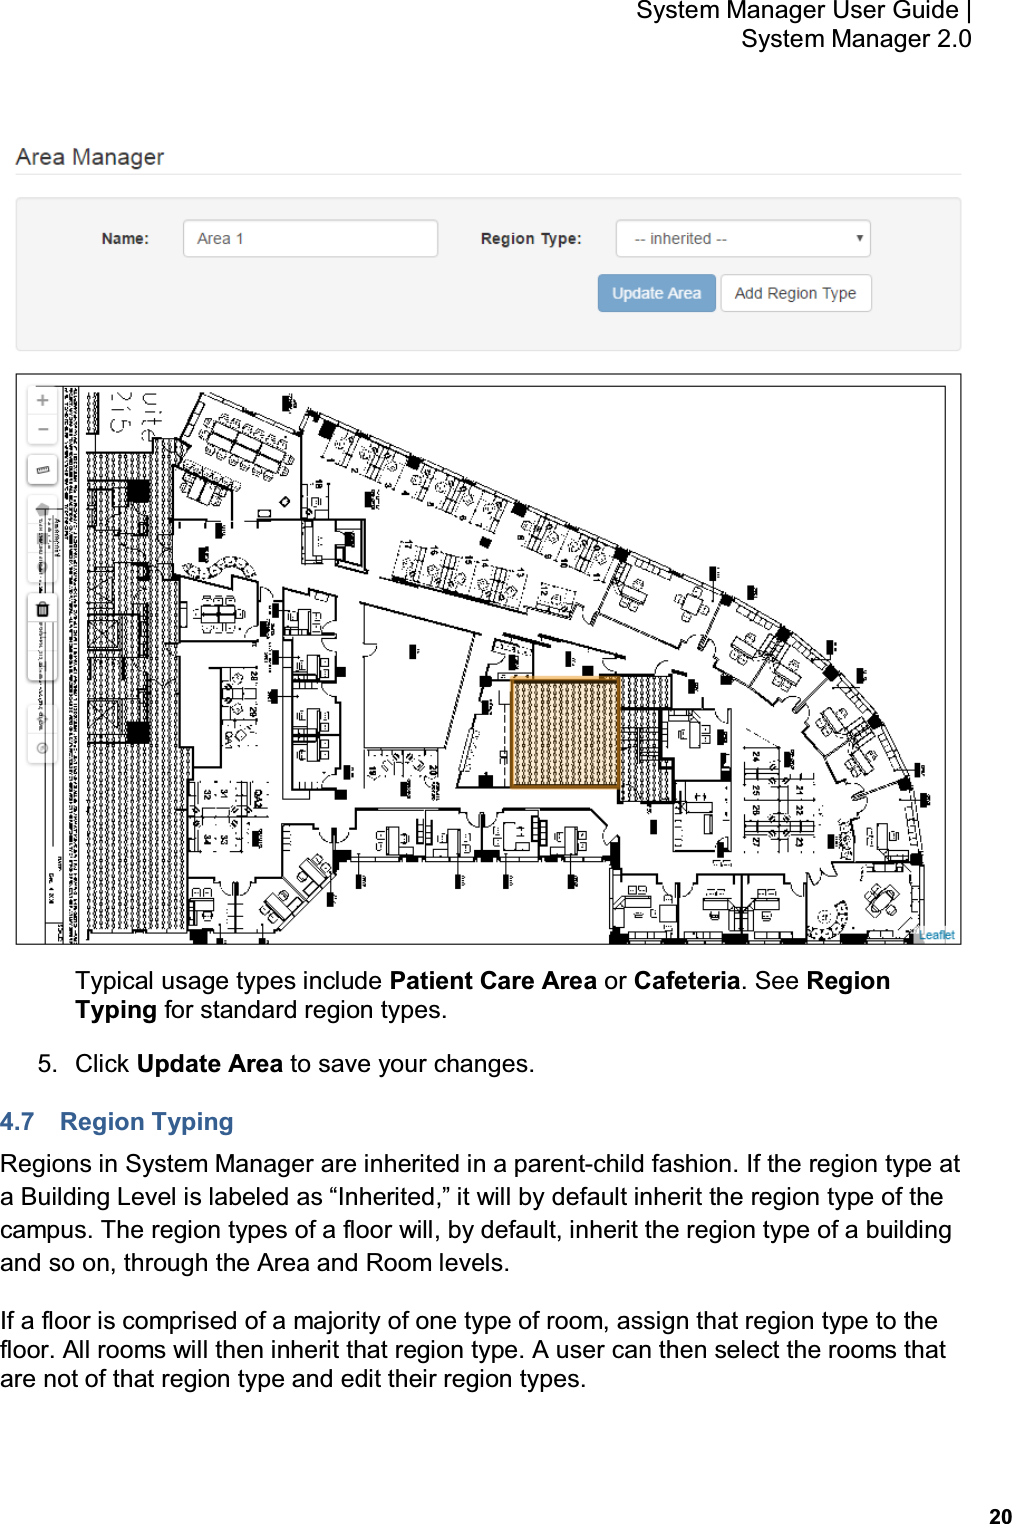 """20 System Manager User Guide    System Manager 2.0  Typical usage types include Patient Care Area or Cafeteria. See Region Typing for standard region types. 5.  Click Update Area to save your changes. 4.7  Region Typing Regions in System Manager are inherited in a parent-child fashion. If the region type at a Building Level is labeled as """"Inherited,"""" it will by default inherit the region type of the campus. The region types of a floor will, by default, inherit the region type of a building and so on, through the Area and Room levels. If a floor is comprised of a majority of one type of room, assign that region type to the floor. All rooms will then inherit that region type. A user can then select the rooms that are not of that region type and edit their region types."""